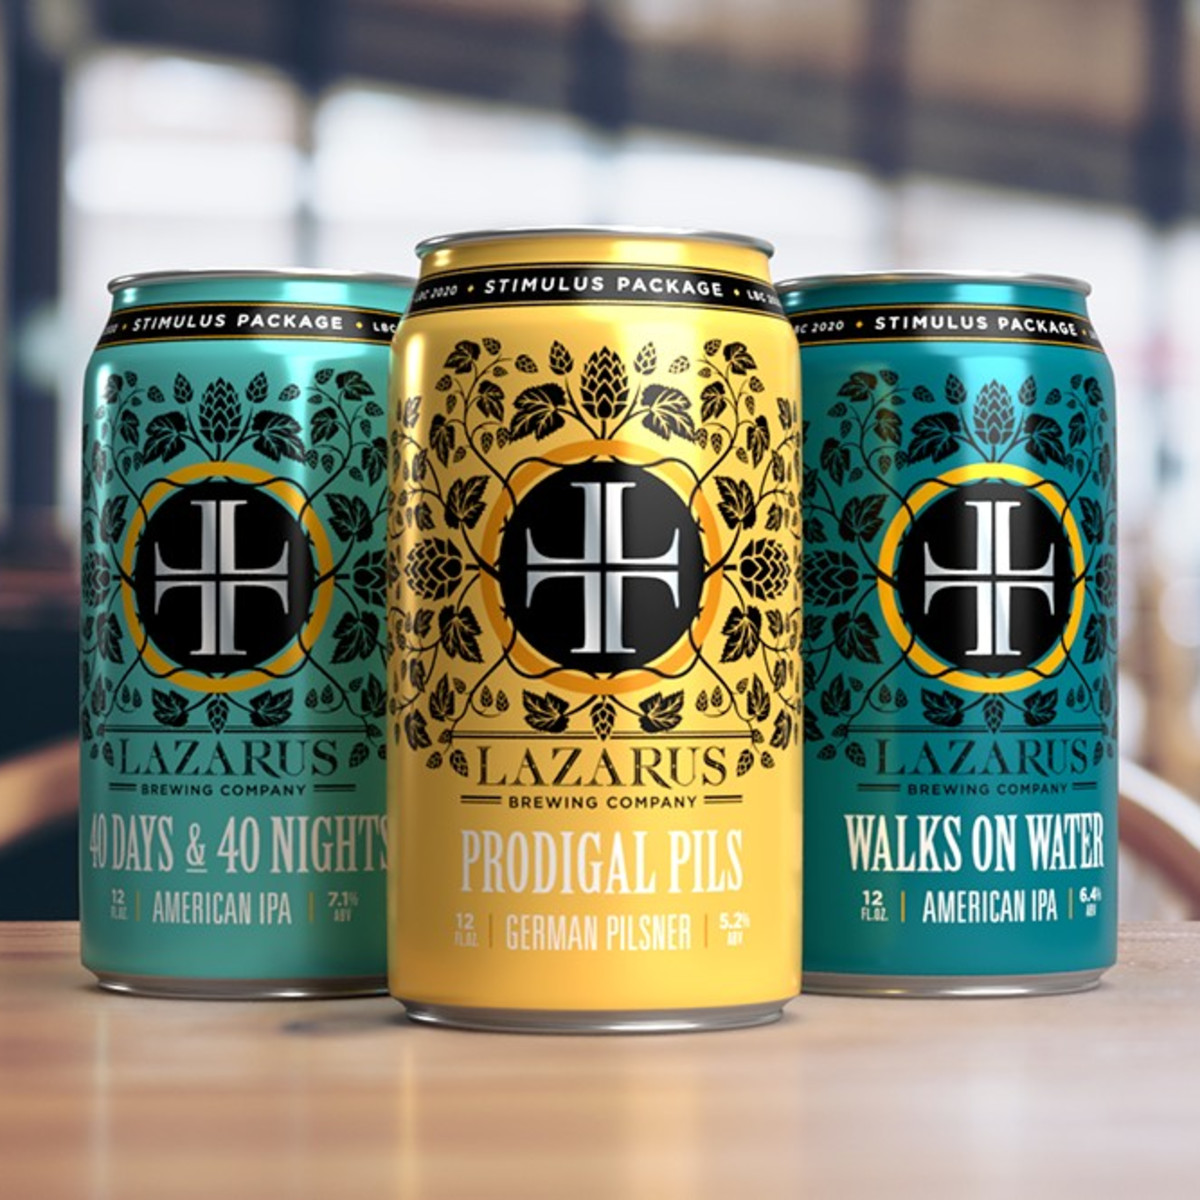 Lazarus Brewing Co. Stimulus Package Beer